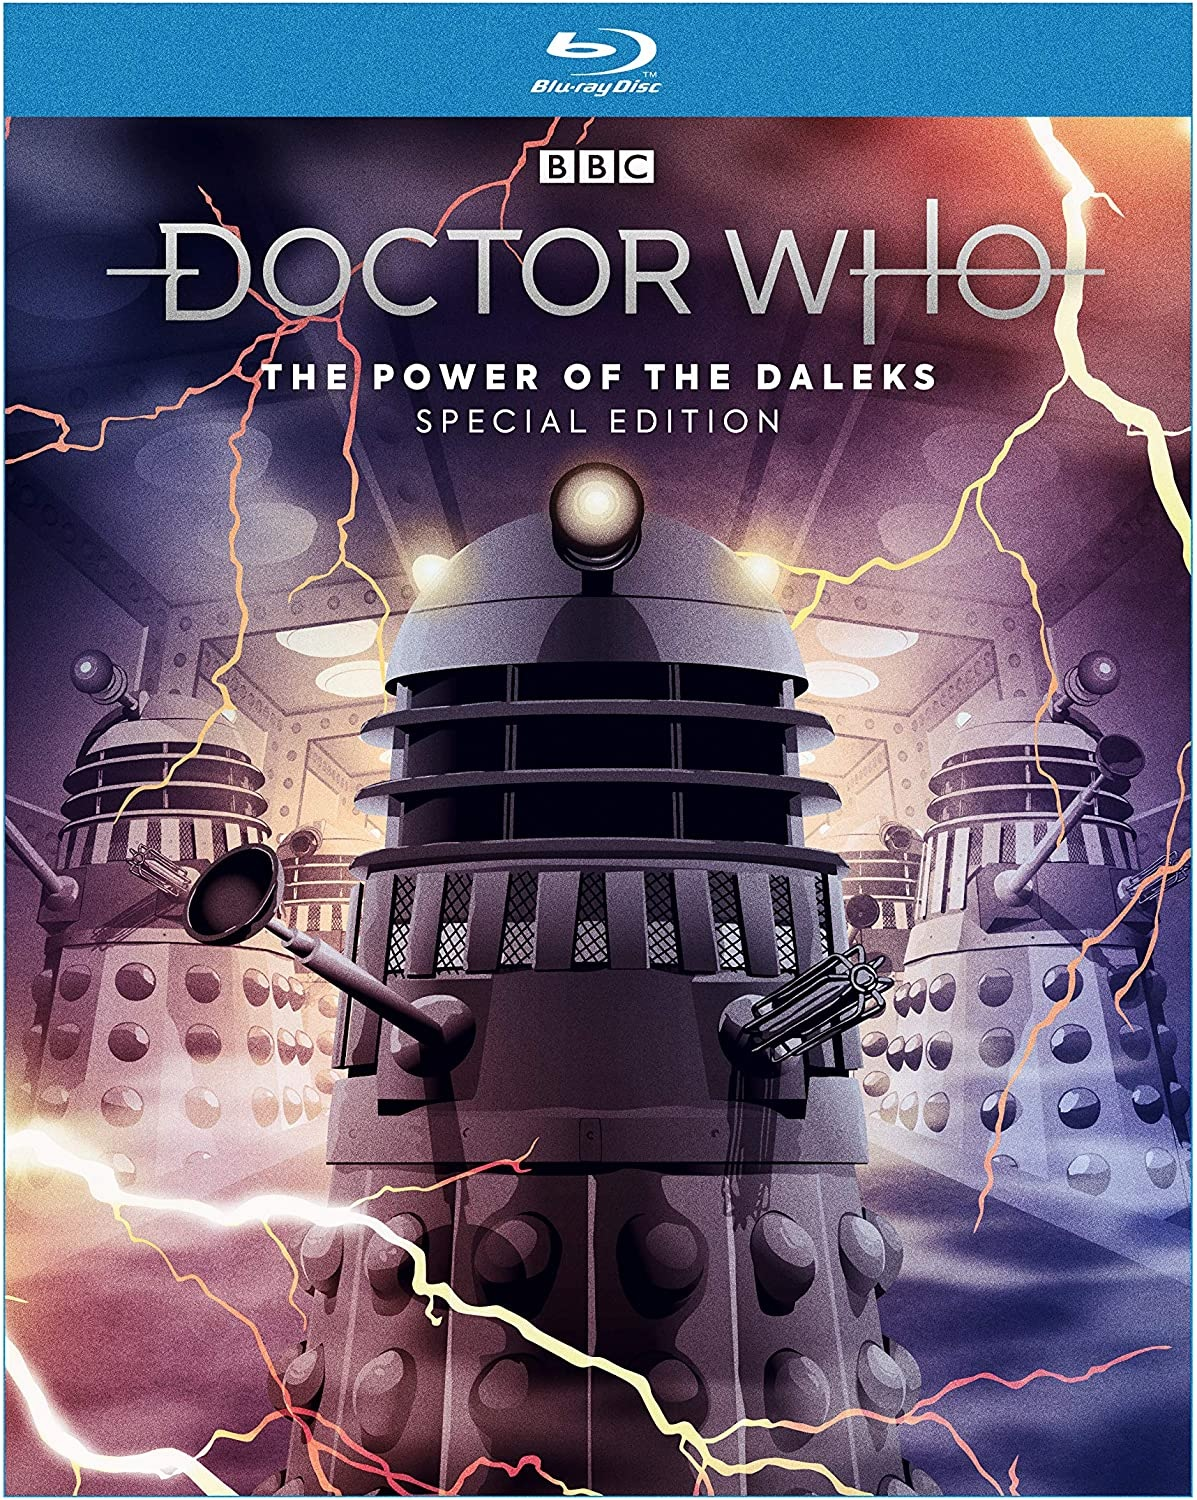 Doctor Who Missing Episodes: Are There Any Positives?